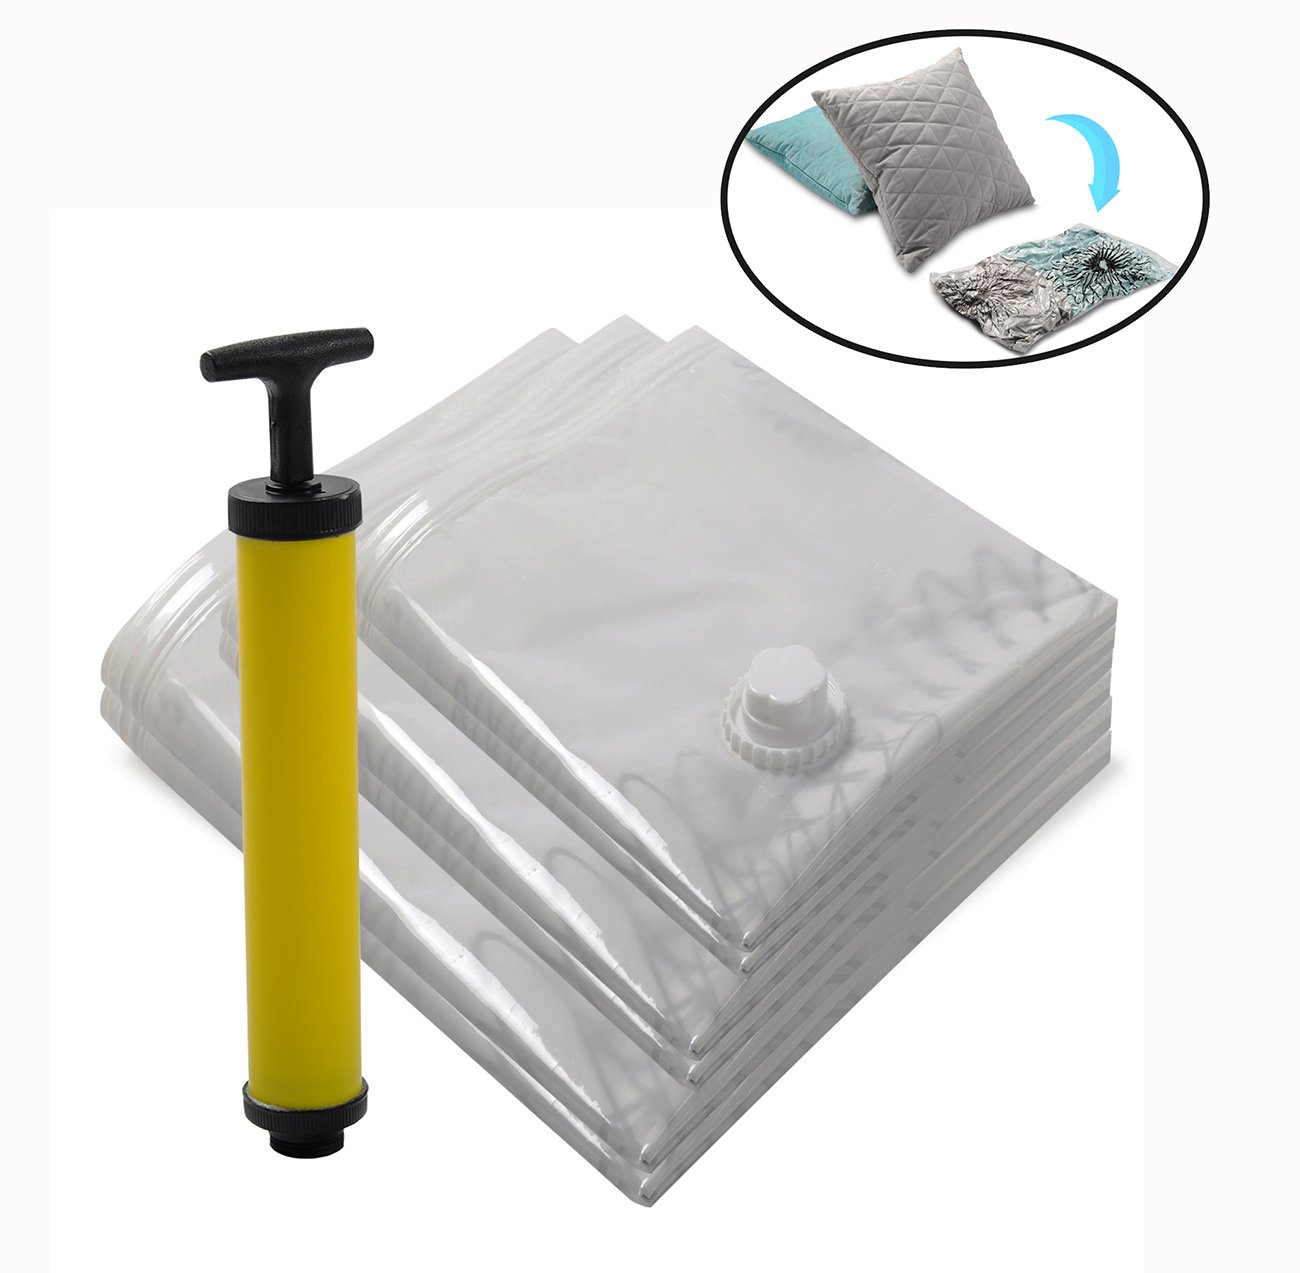 WOLTU Vacuum Storage Bags Set of 6 ,Save 80/% Space for Clothes,Pillows/&Bedding,Travel Luggage-VSB01S06 2 Small,2 Medium,2 Large